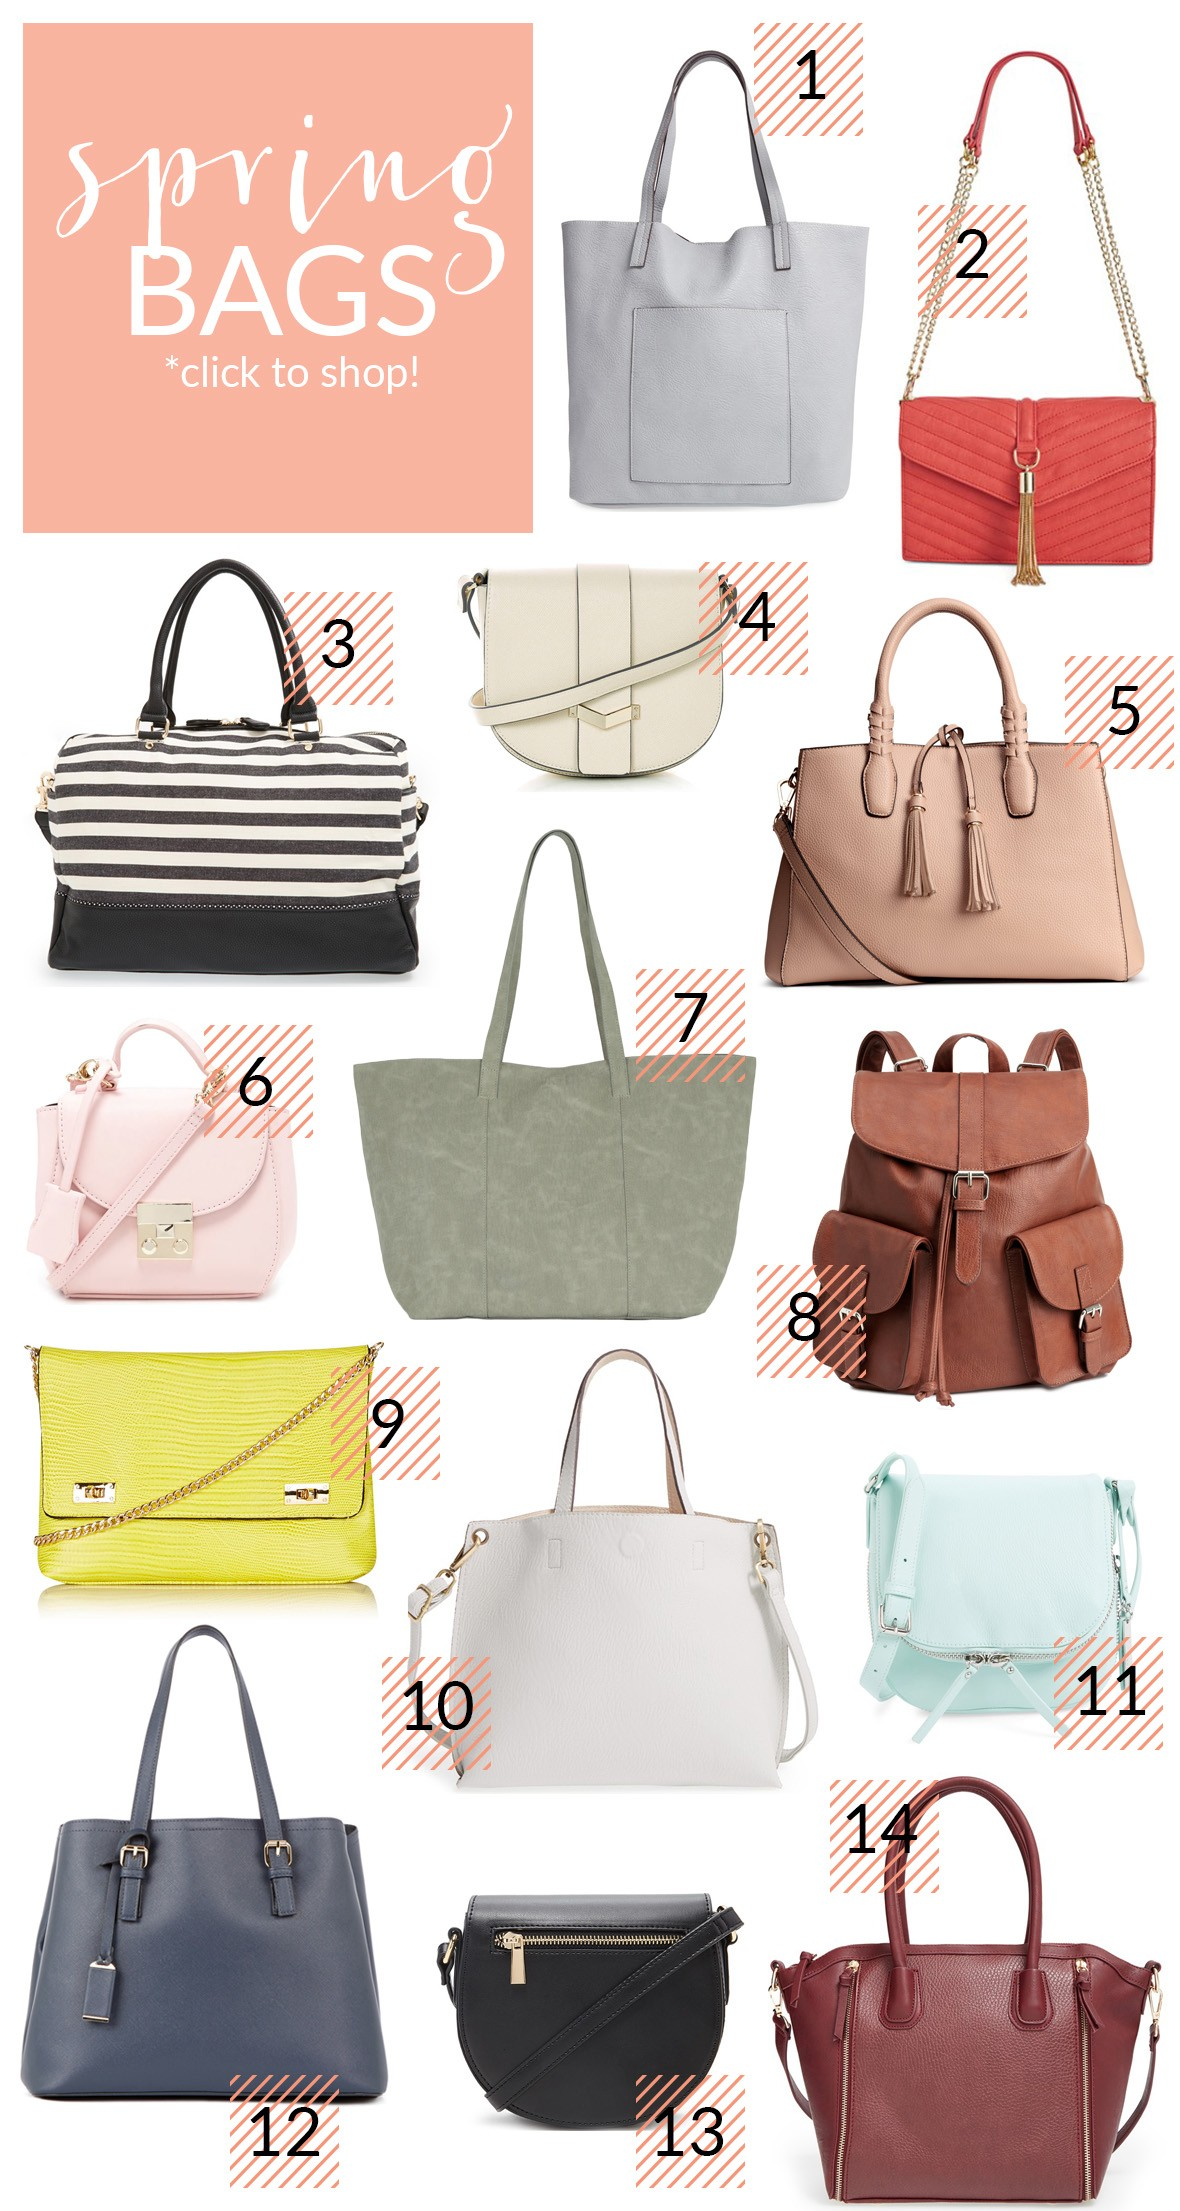 More Spring Bags To Love